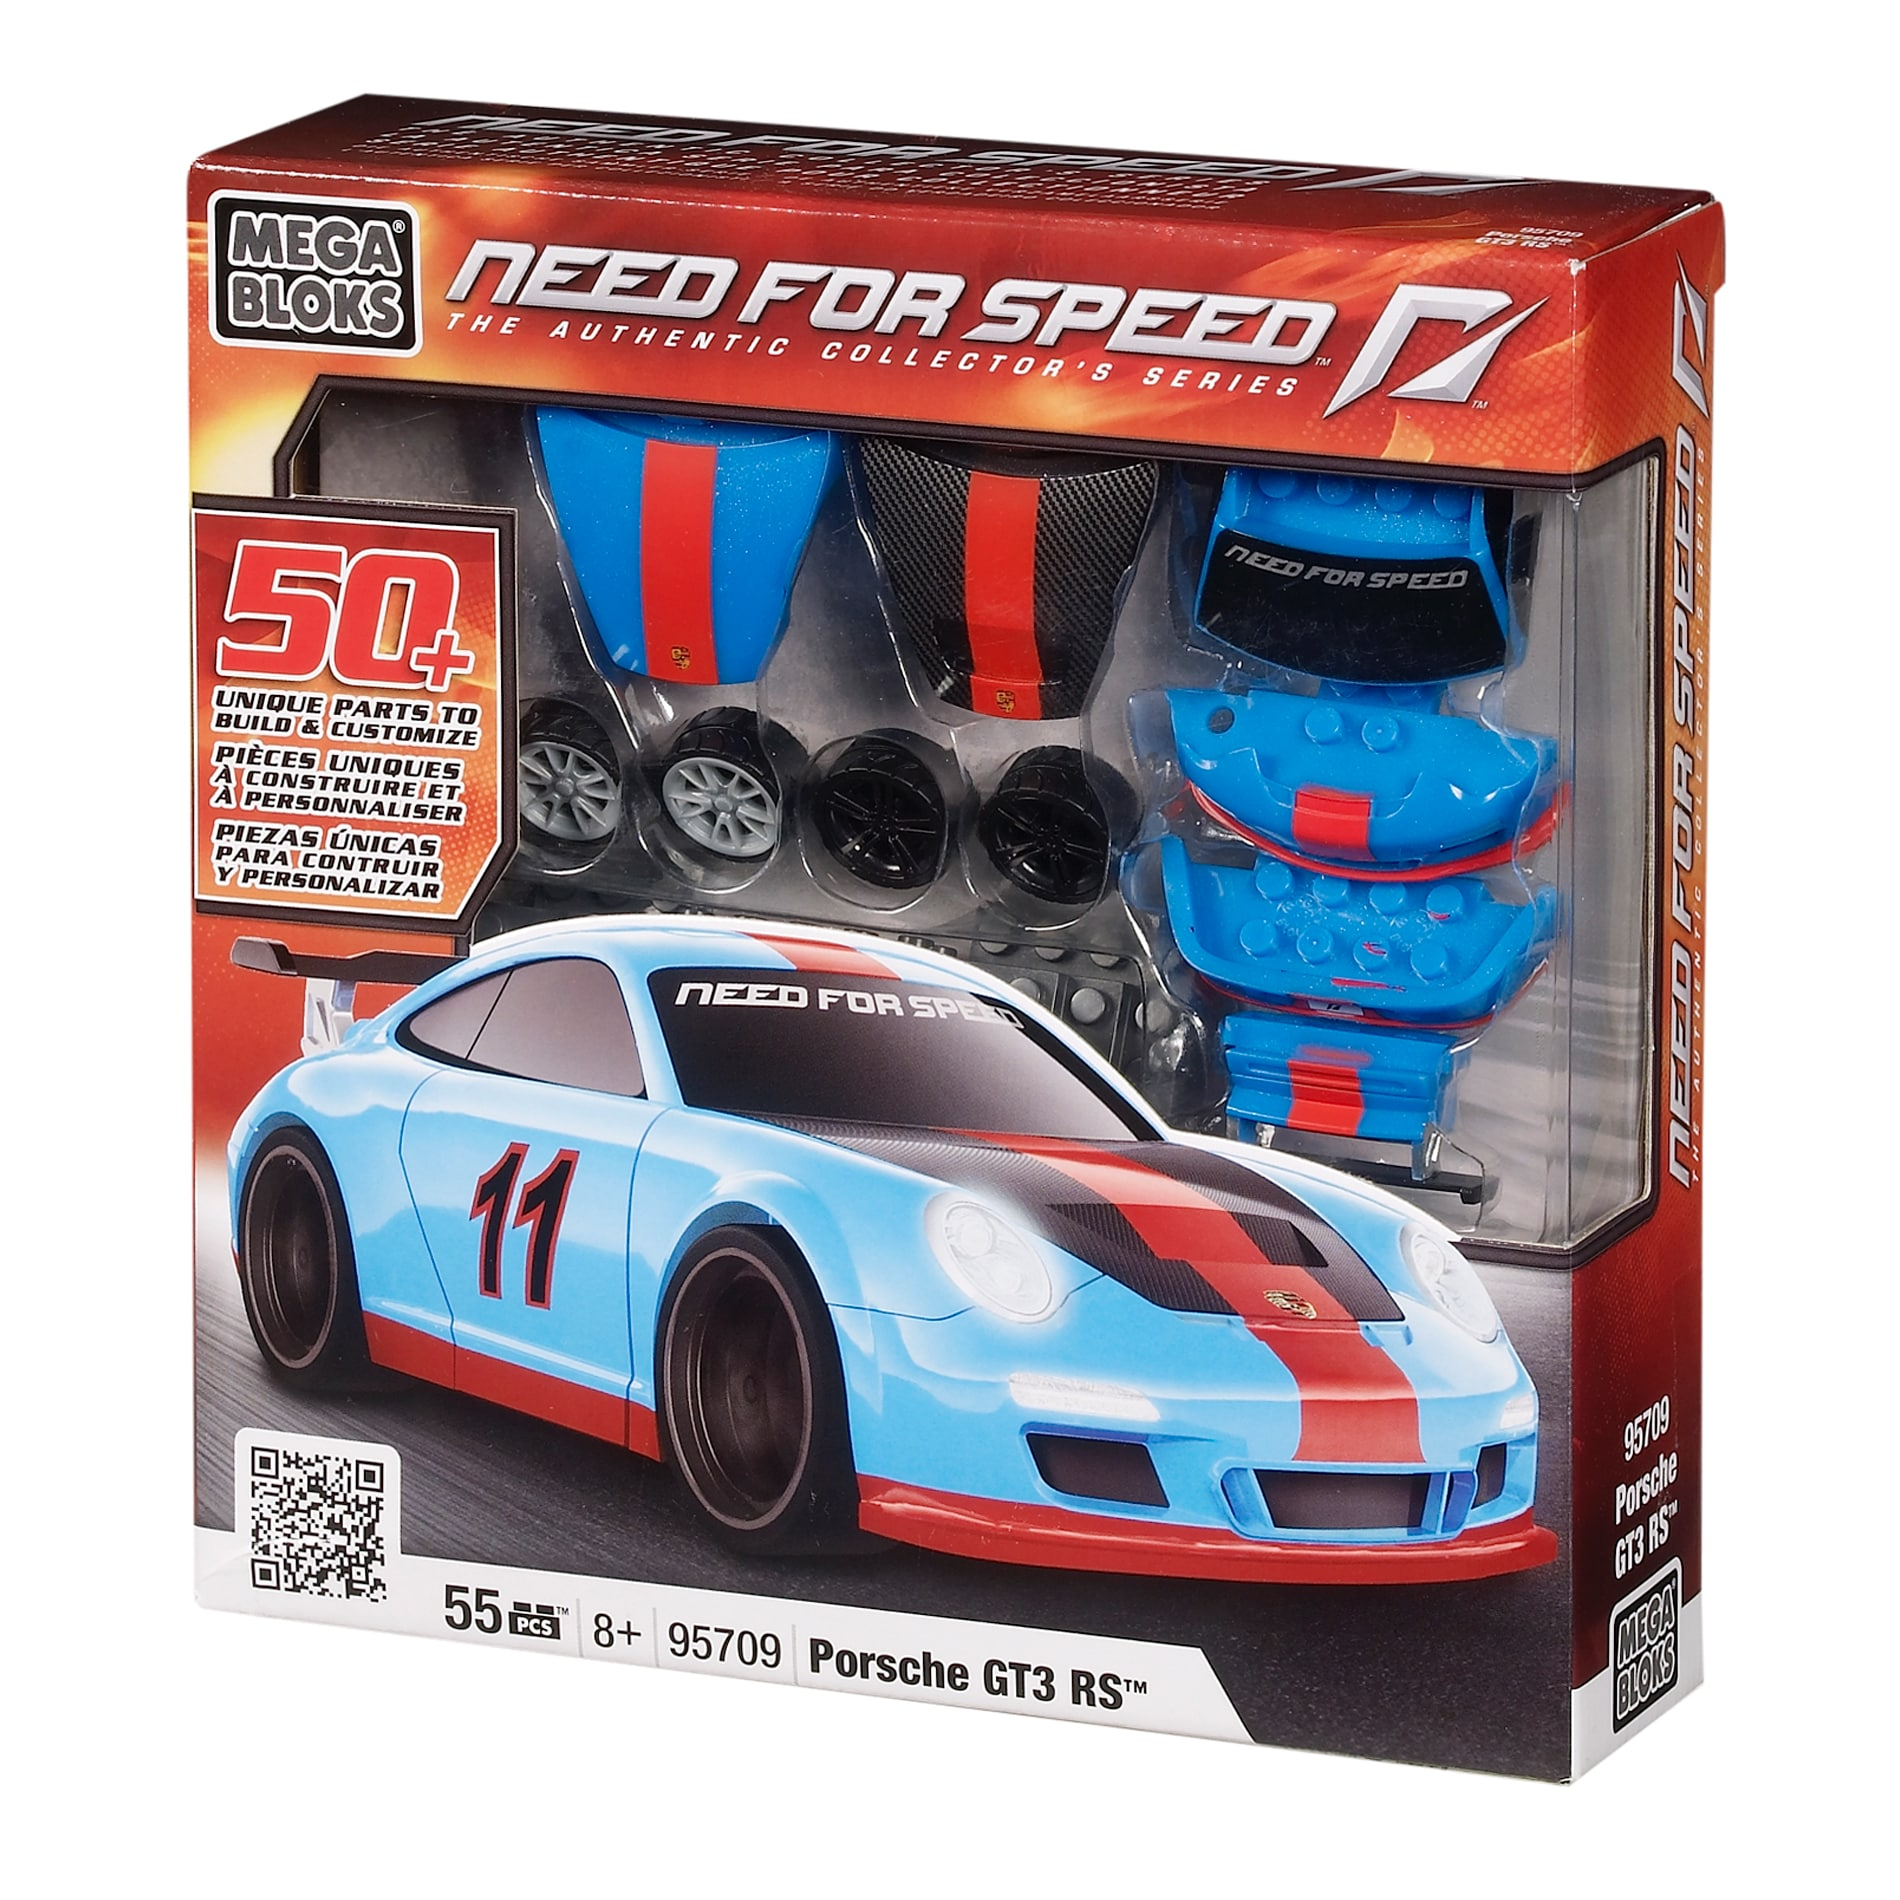 Need for Speed Porsche GT3 RS 1:38 Buildable Car